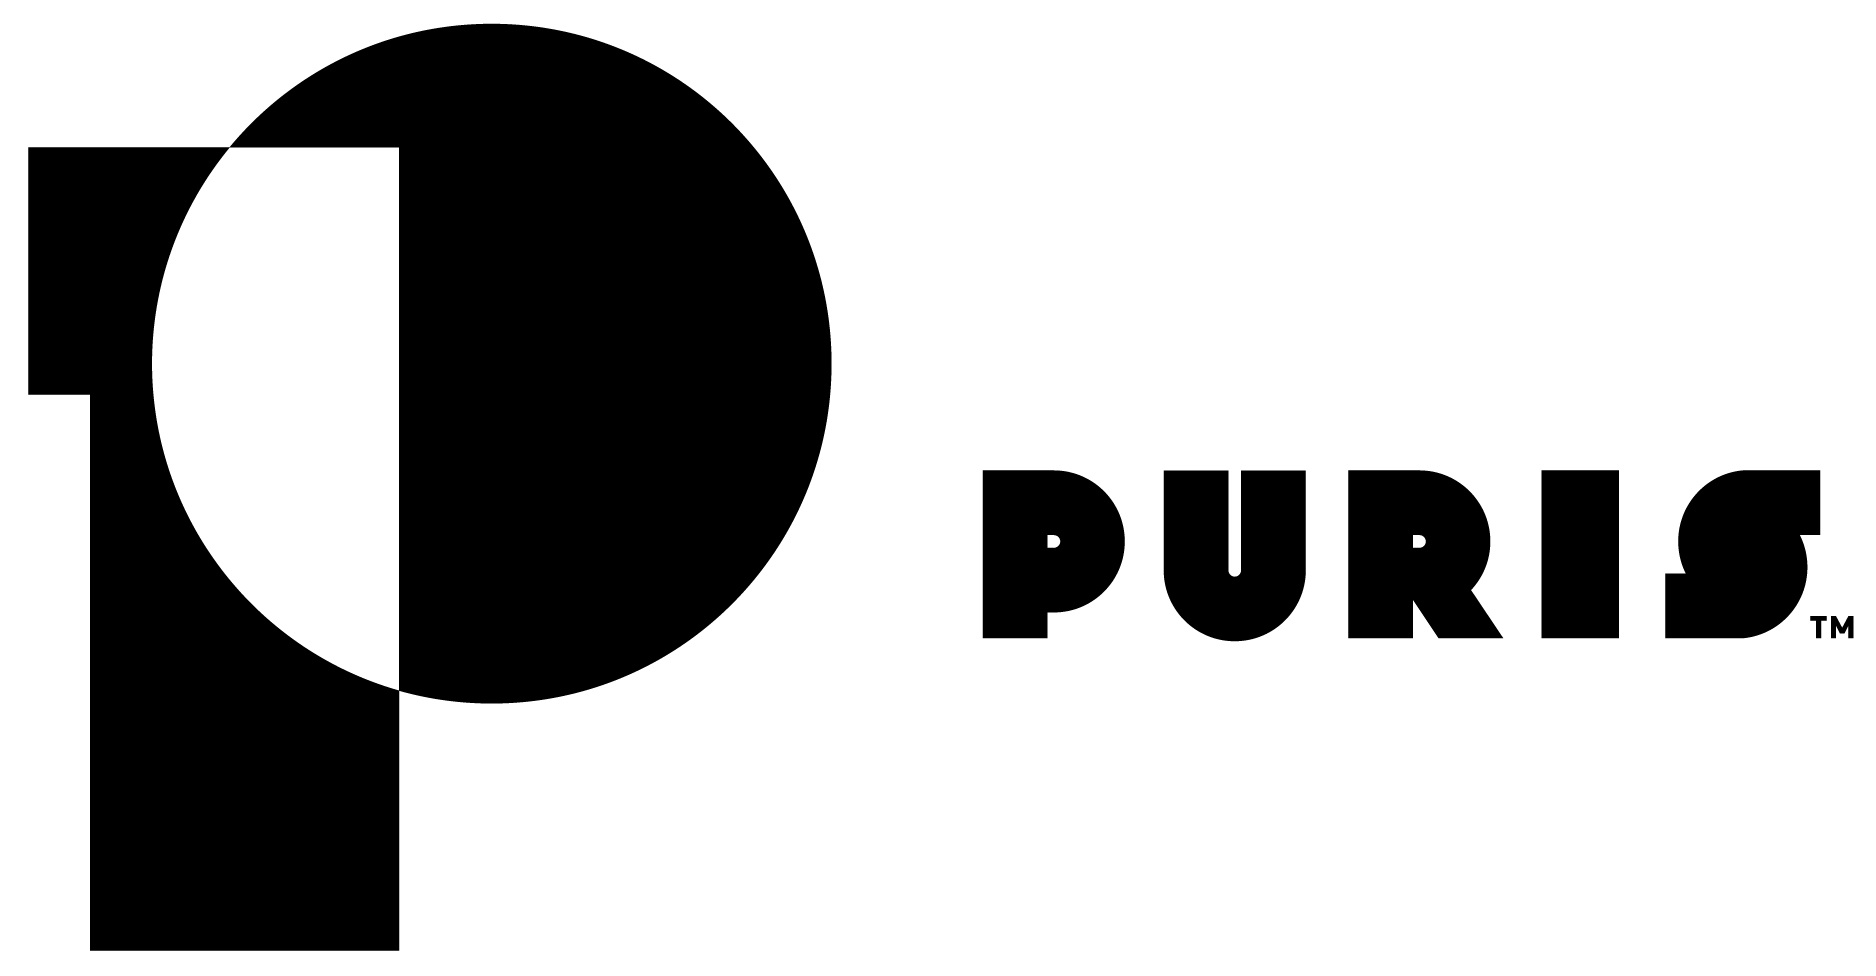 PURIS_logo_black